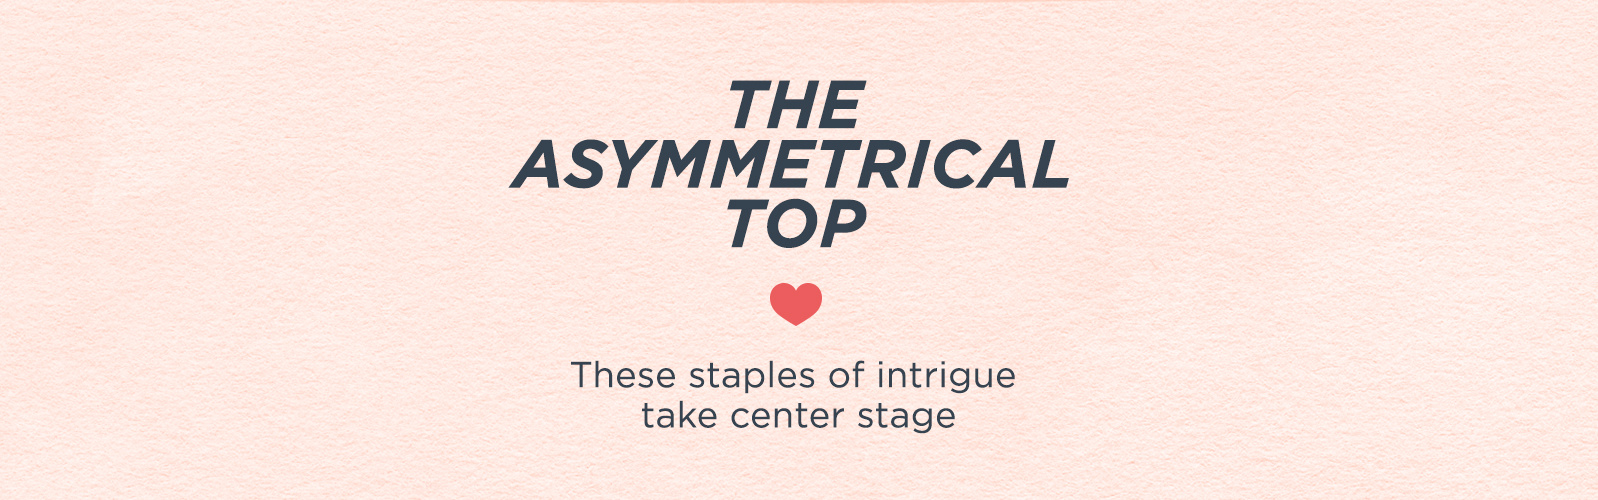 The Asymmetrical Top --These staples of intrigue take center stage